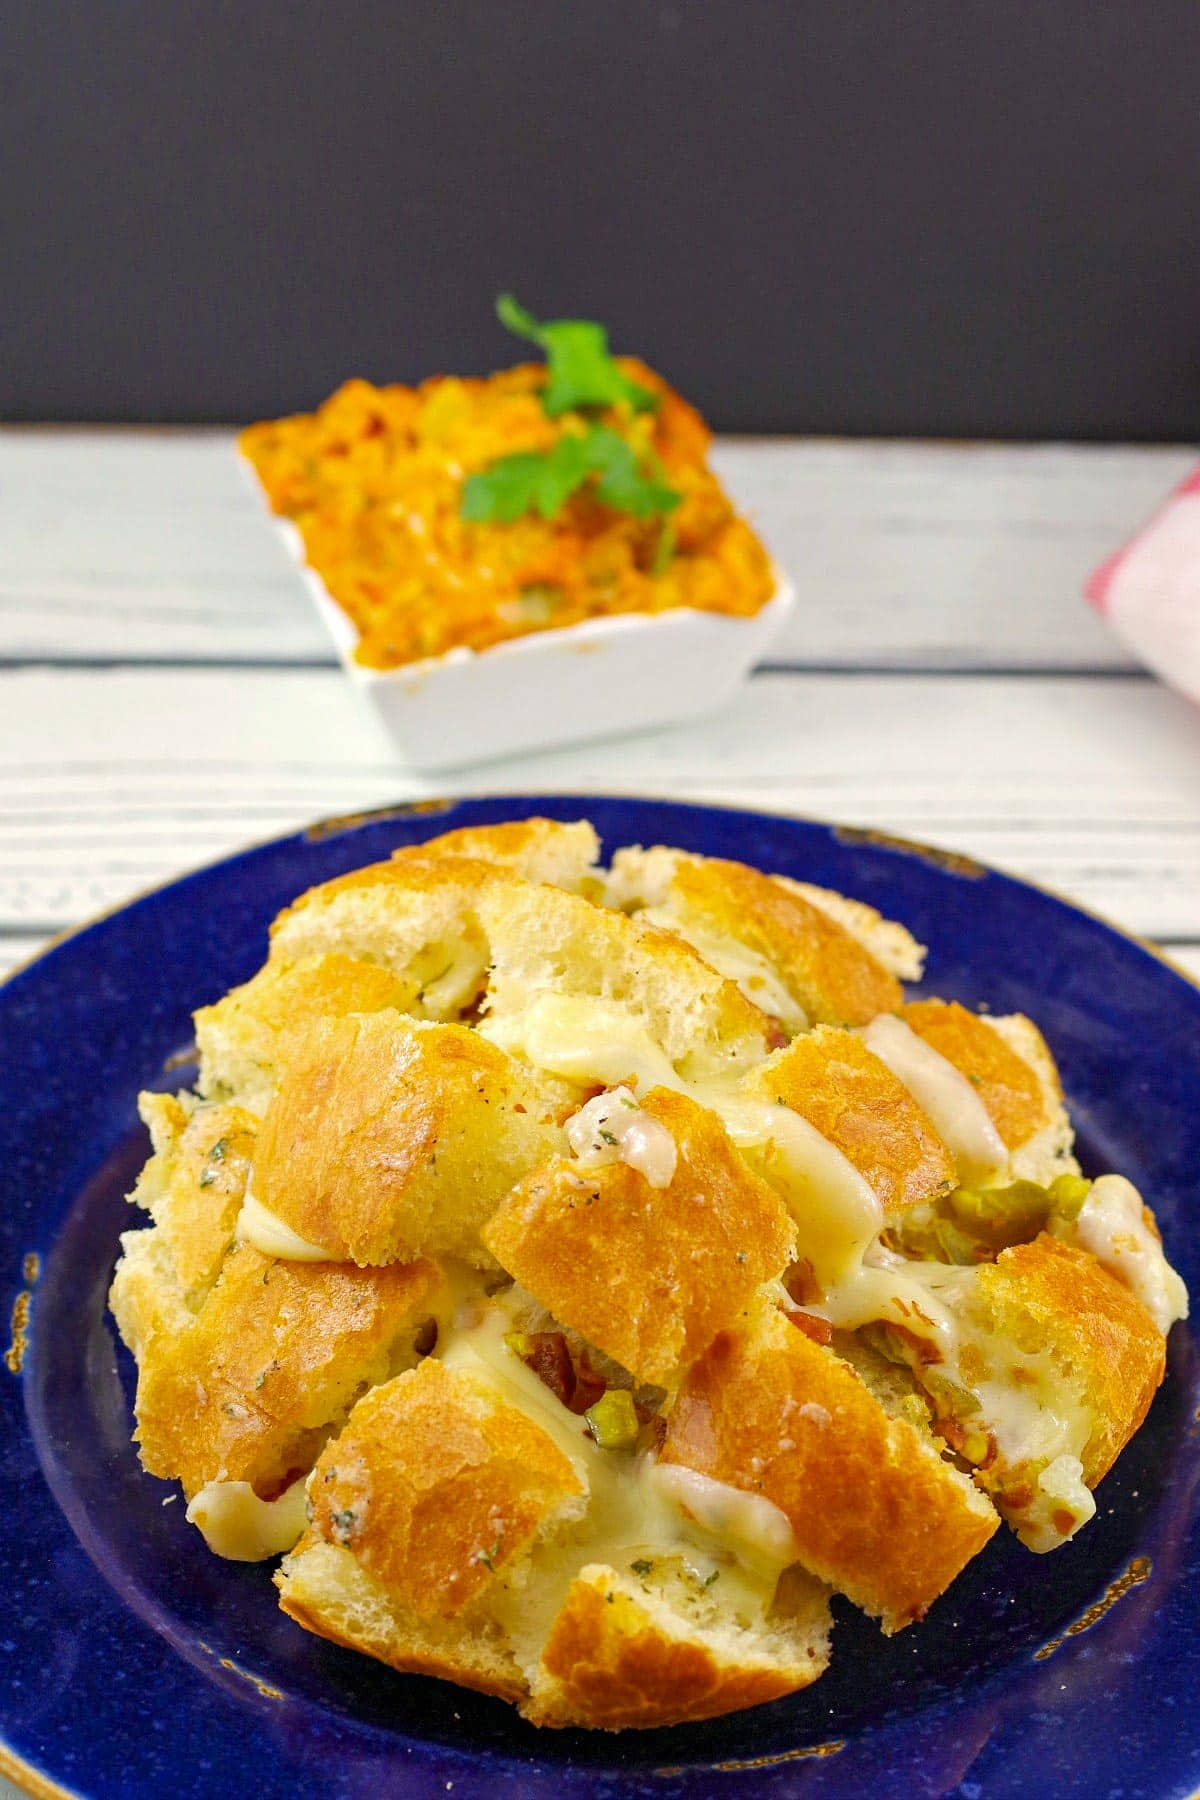 cheese and bacon pull apart bread on a blue plate with small bowl of dip in the background